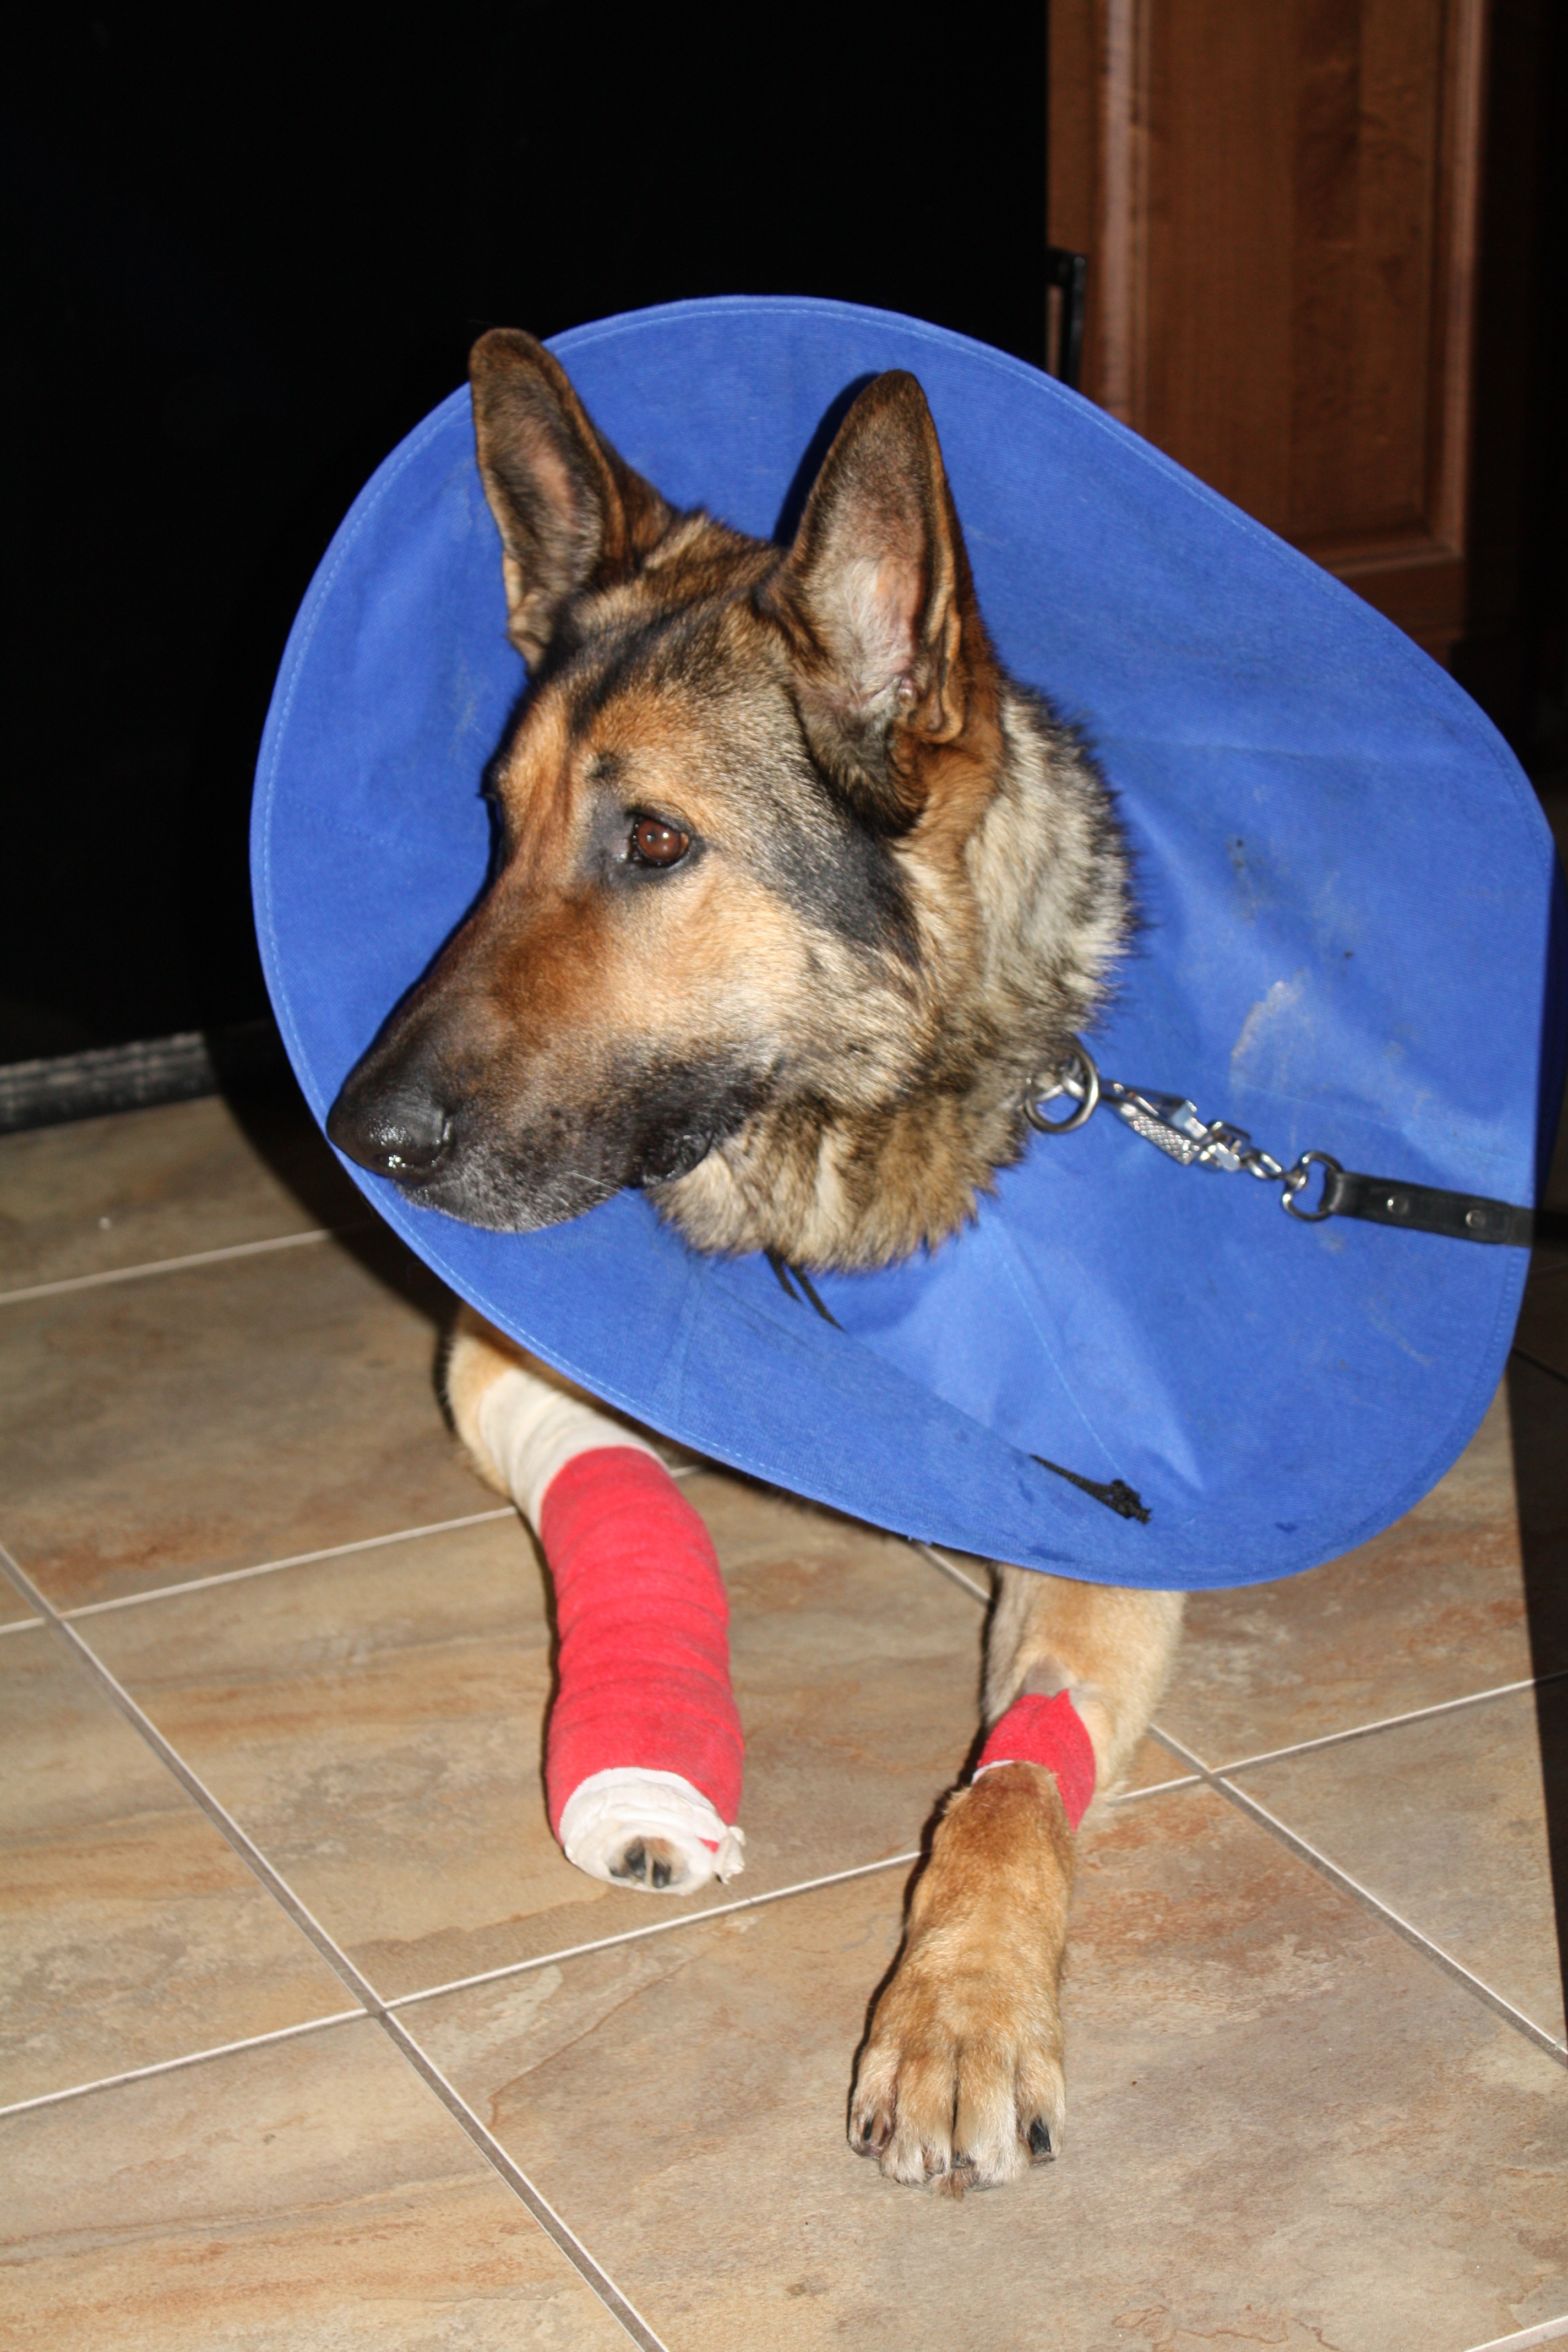 police service dog Bosco recovering from his injury